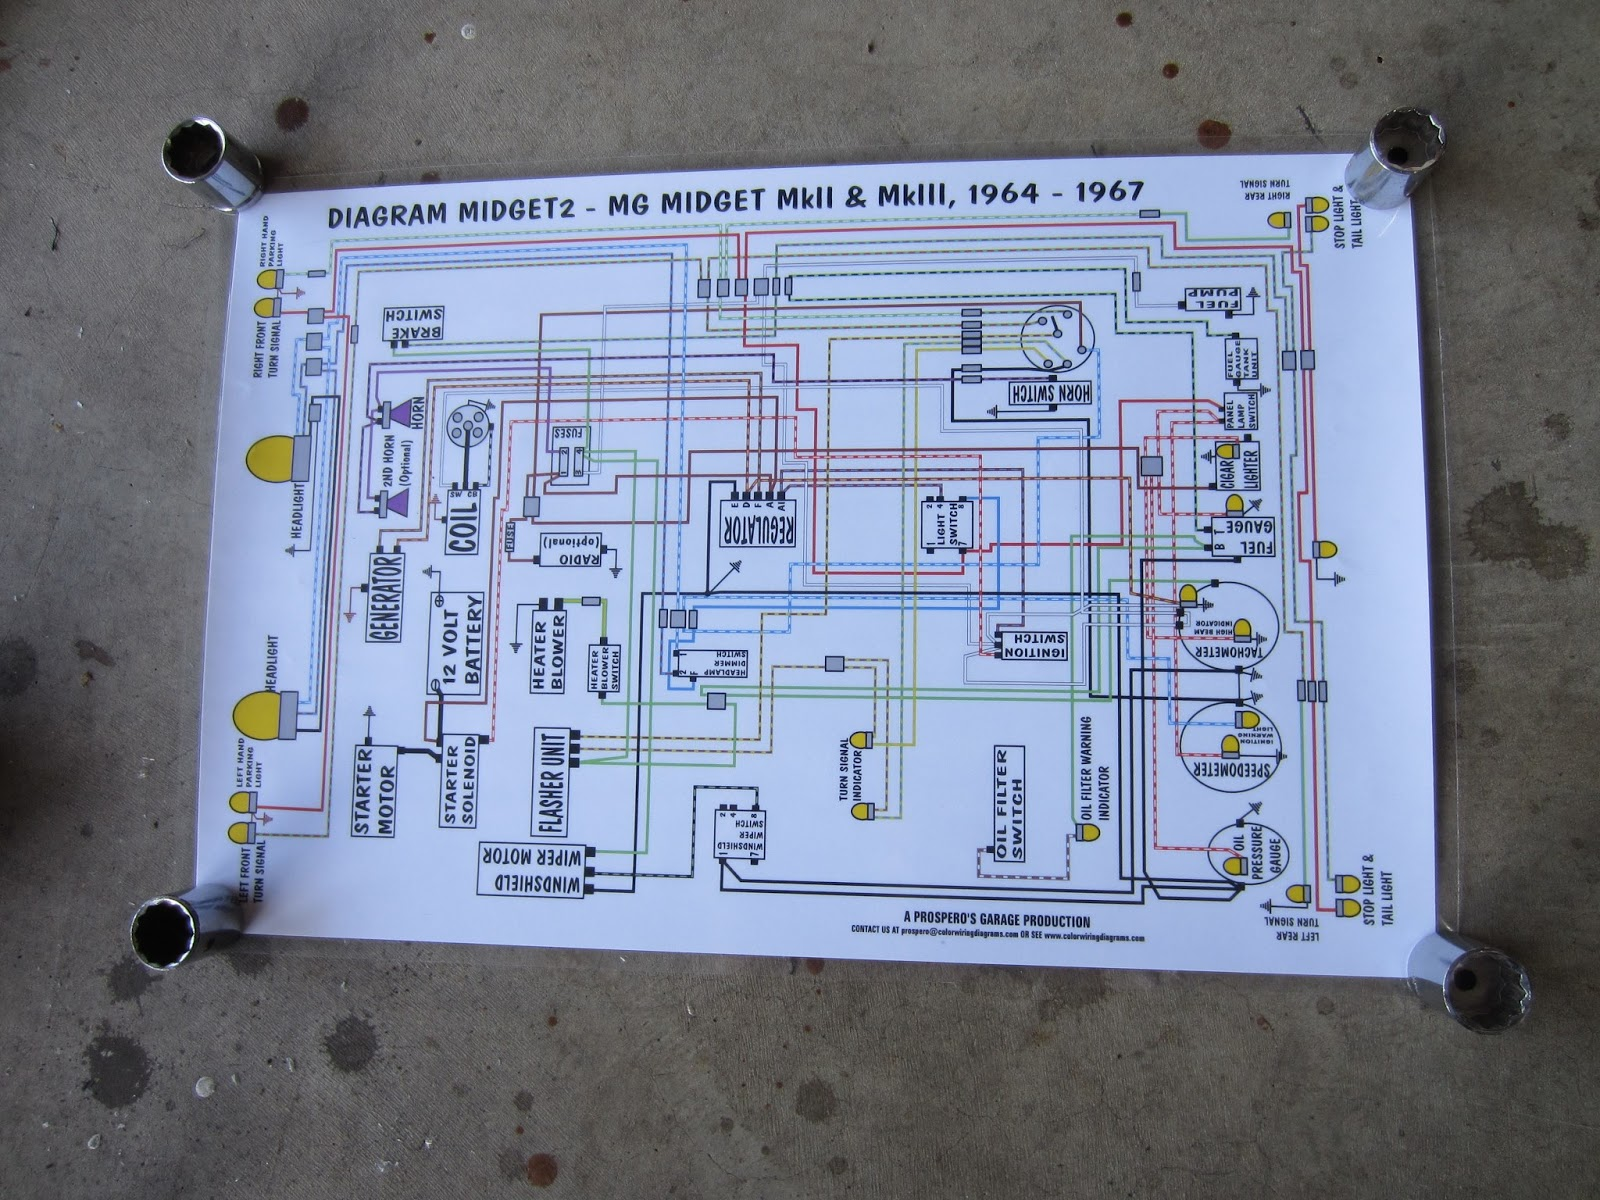 mg midget 1500 wiring diagram high power led driver circuit 1275 29 images